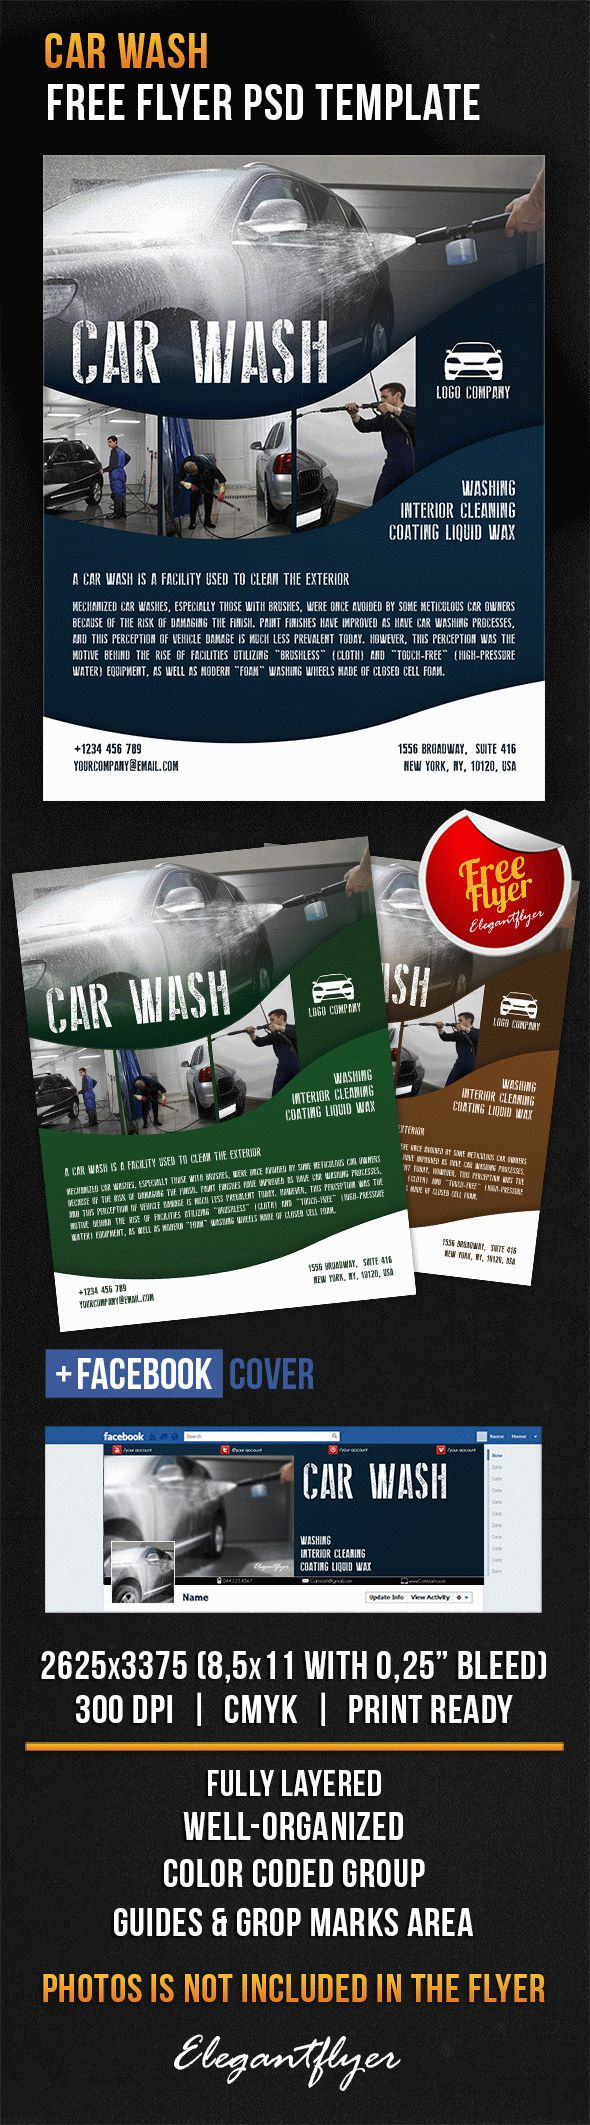 Car Wash Free Flyer Psd Template By Elegantflyer